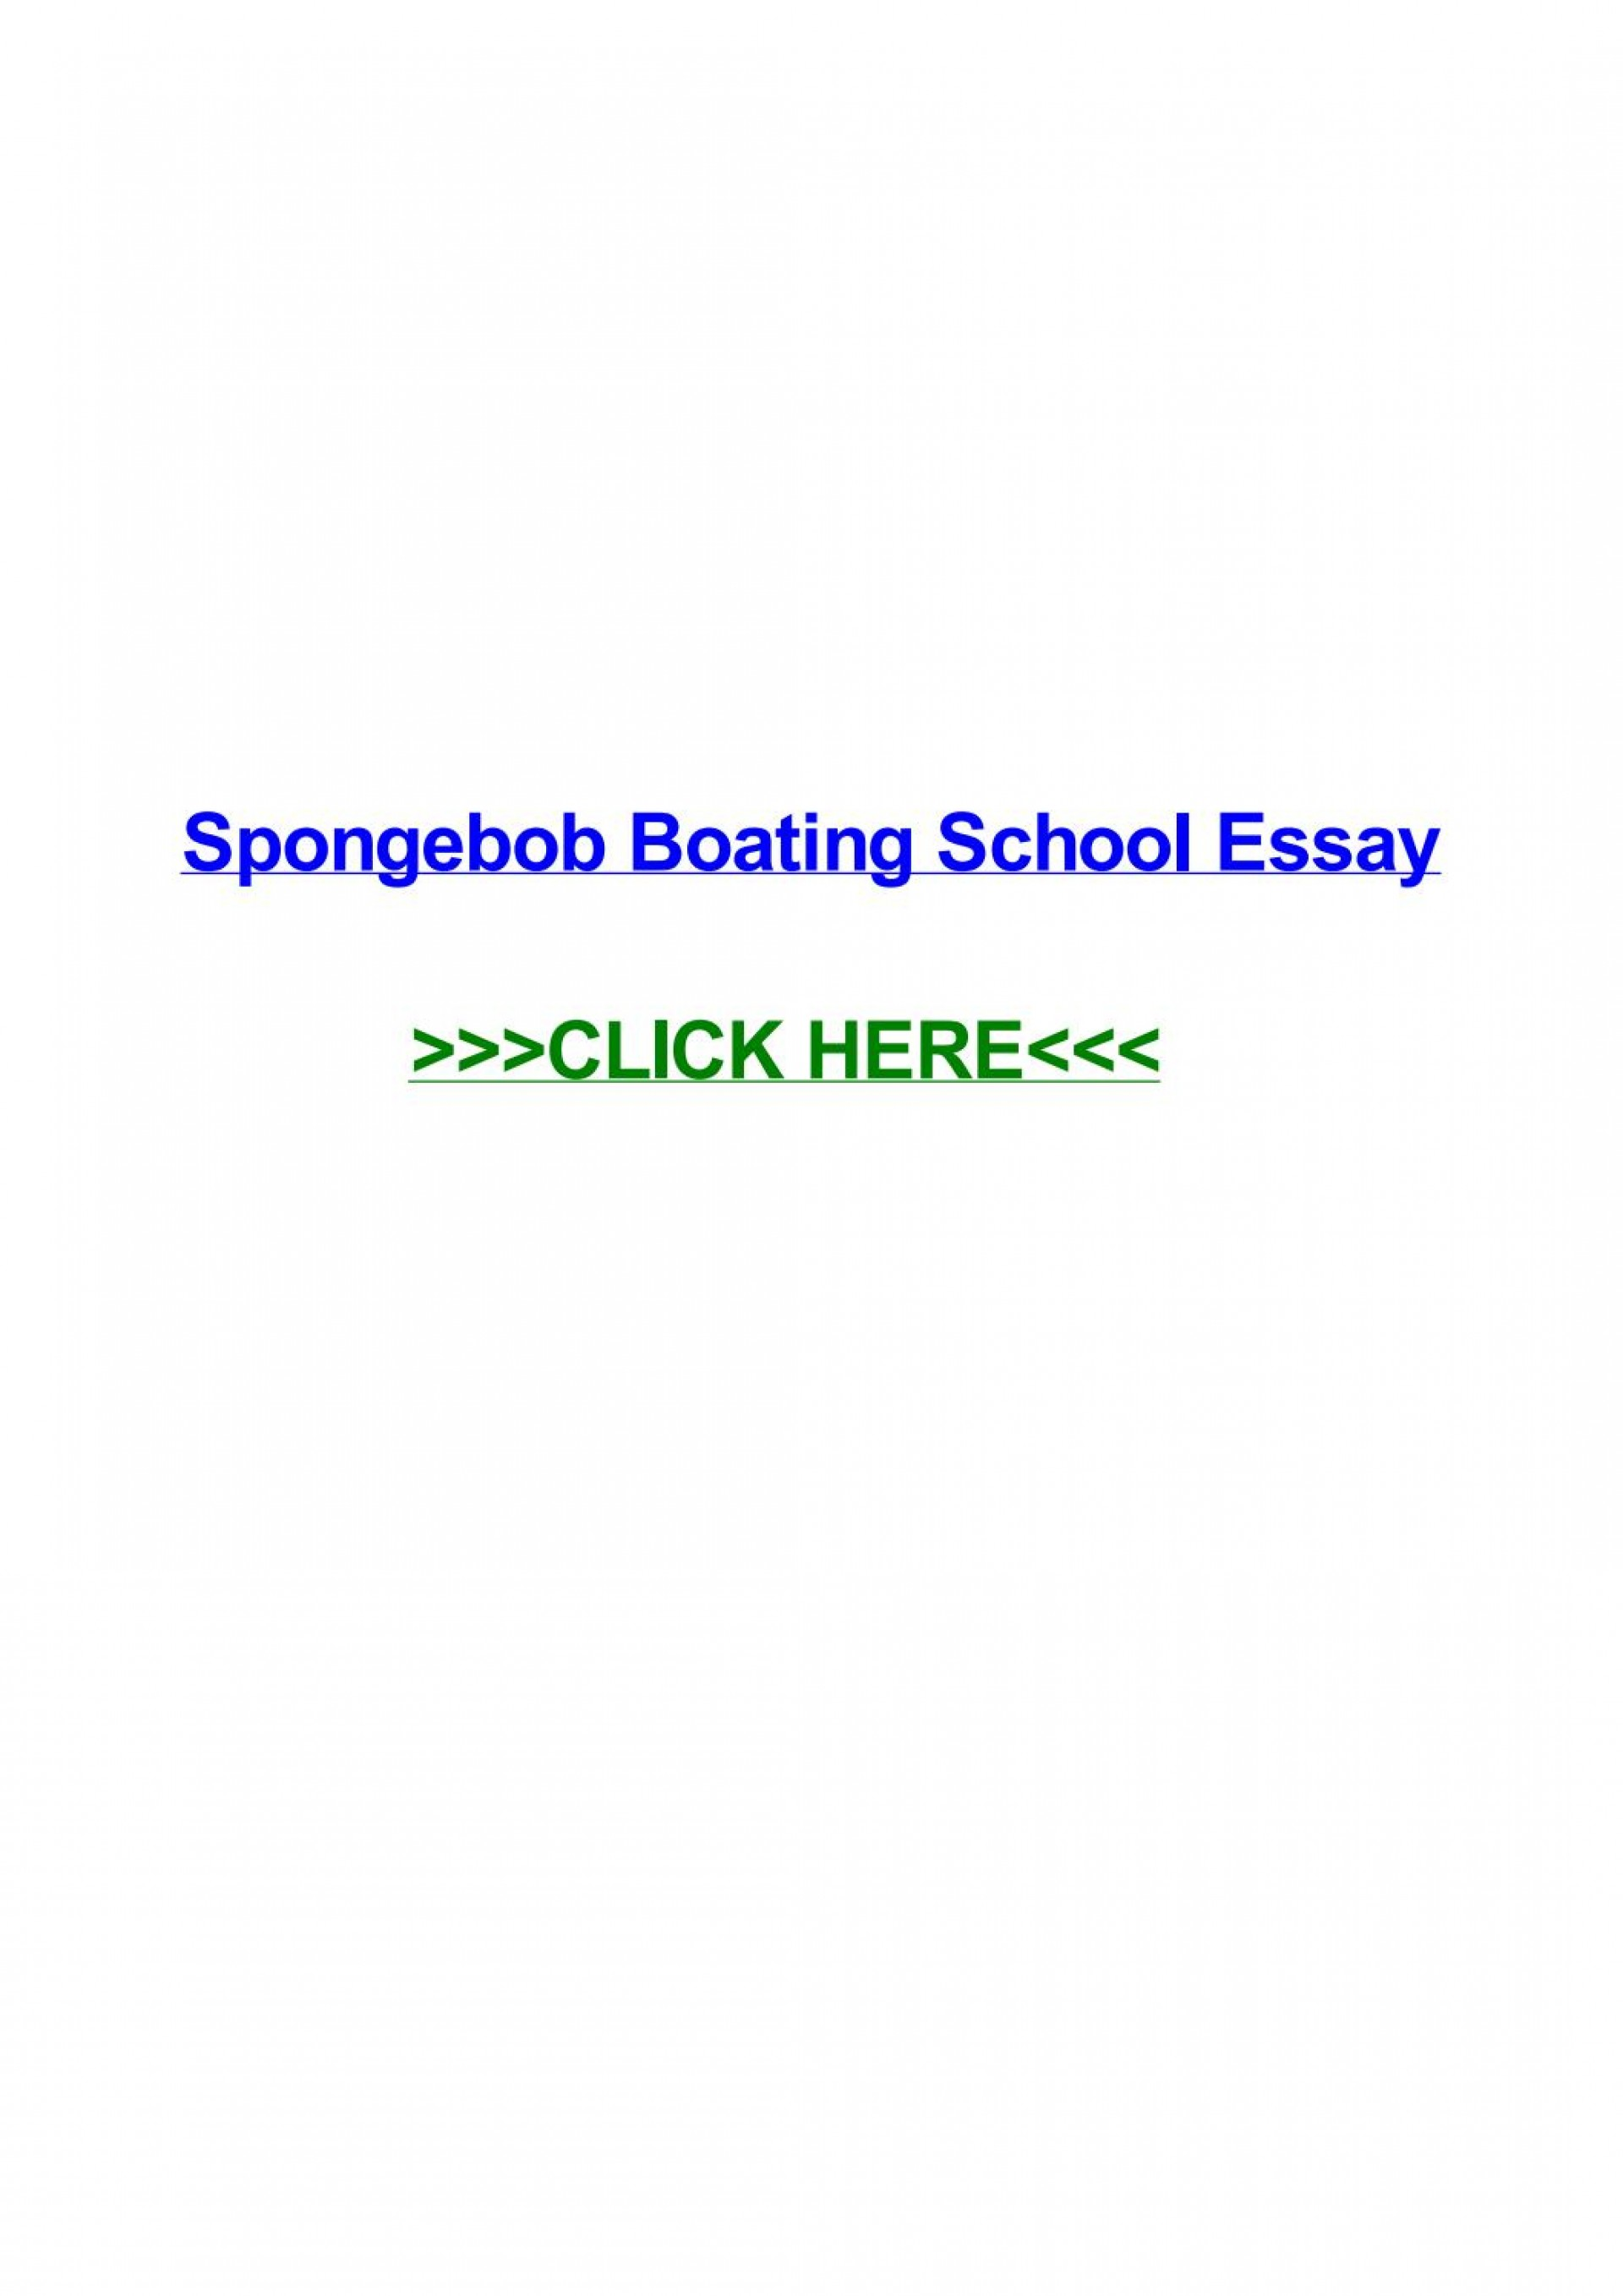 017 Spongebob The Essay Font Example Page 1 Top Google Docs Copy And Paste Name 1920